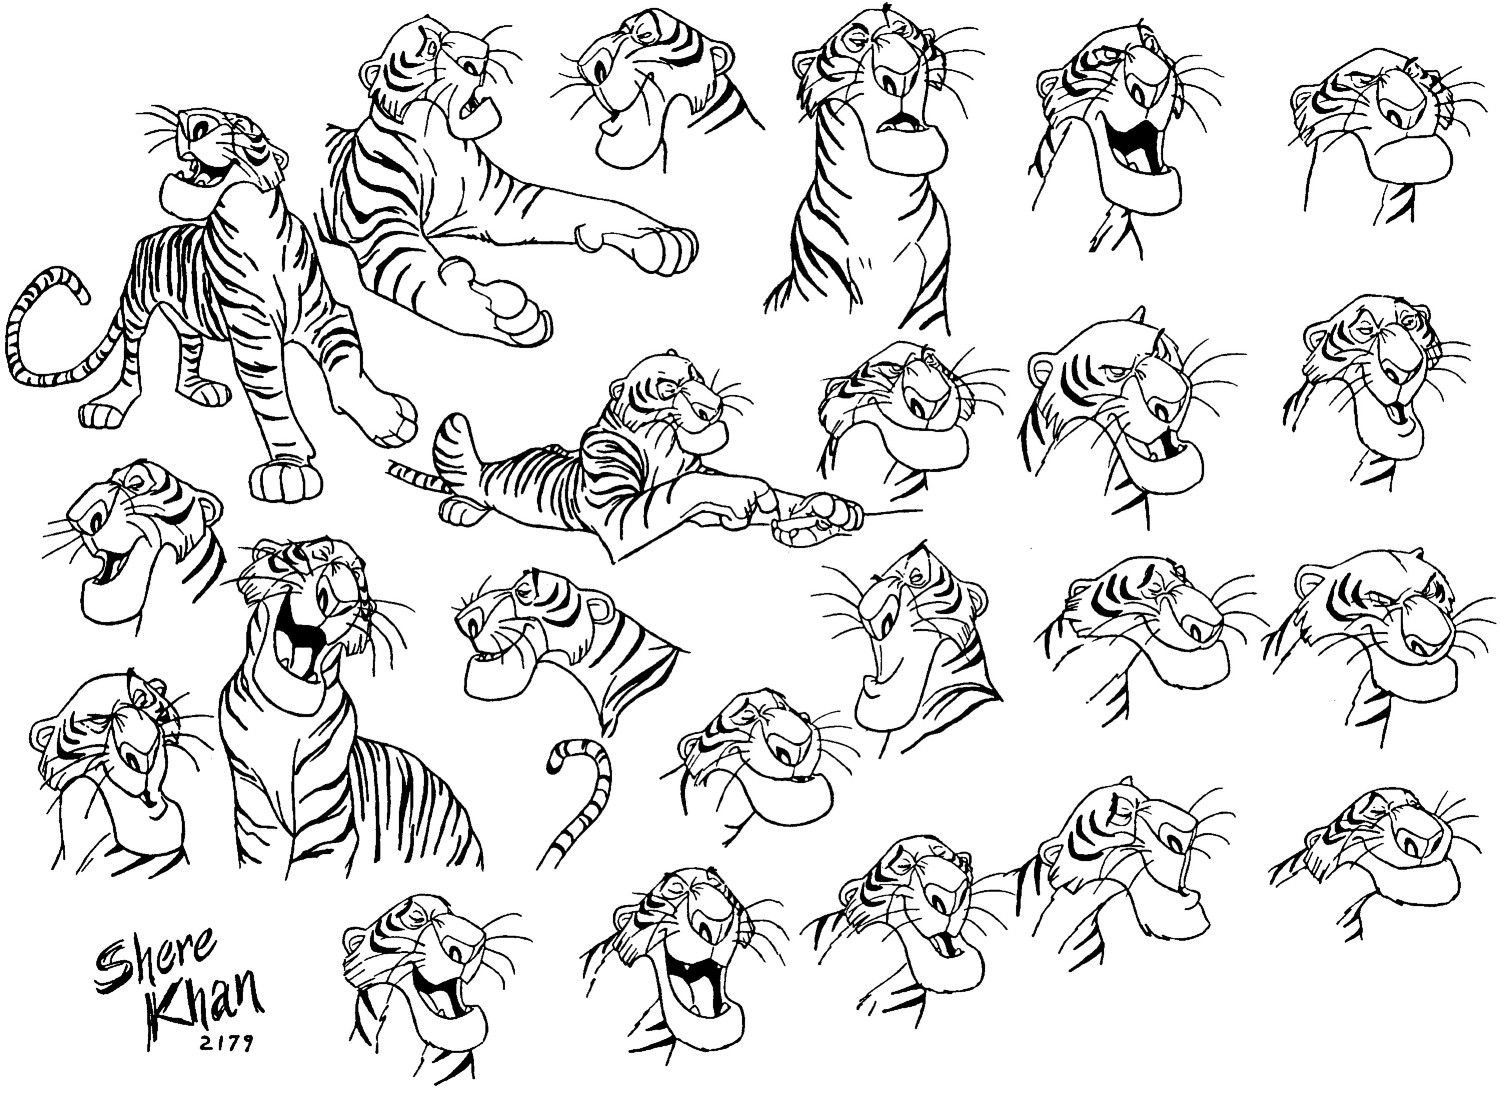 Picture Book Character Design : Shere khan jungle book animation model sheet